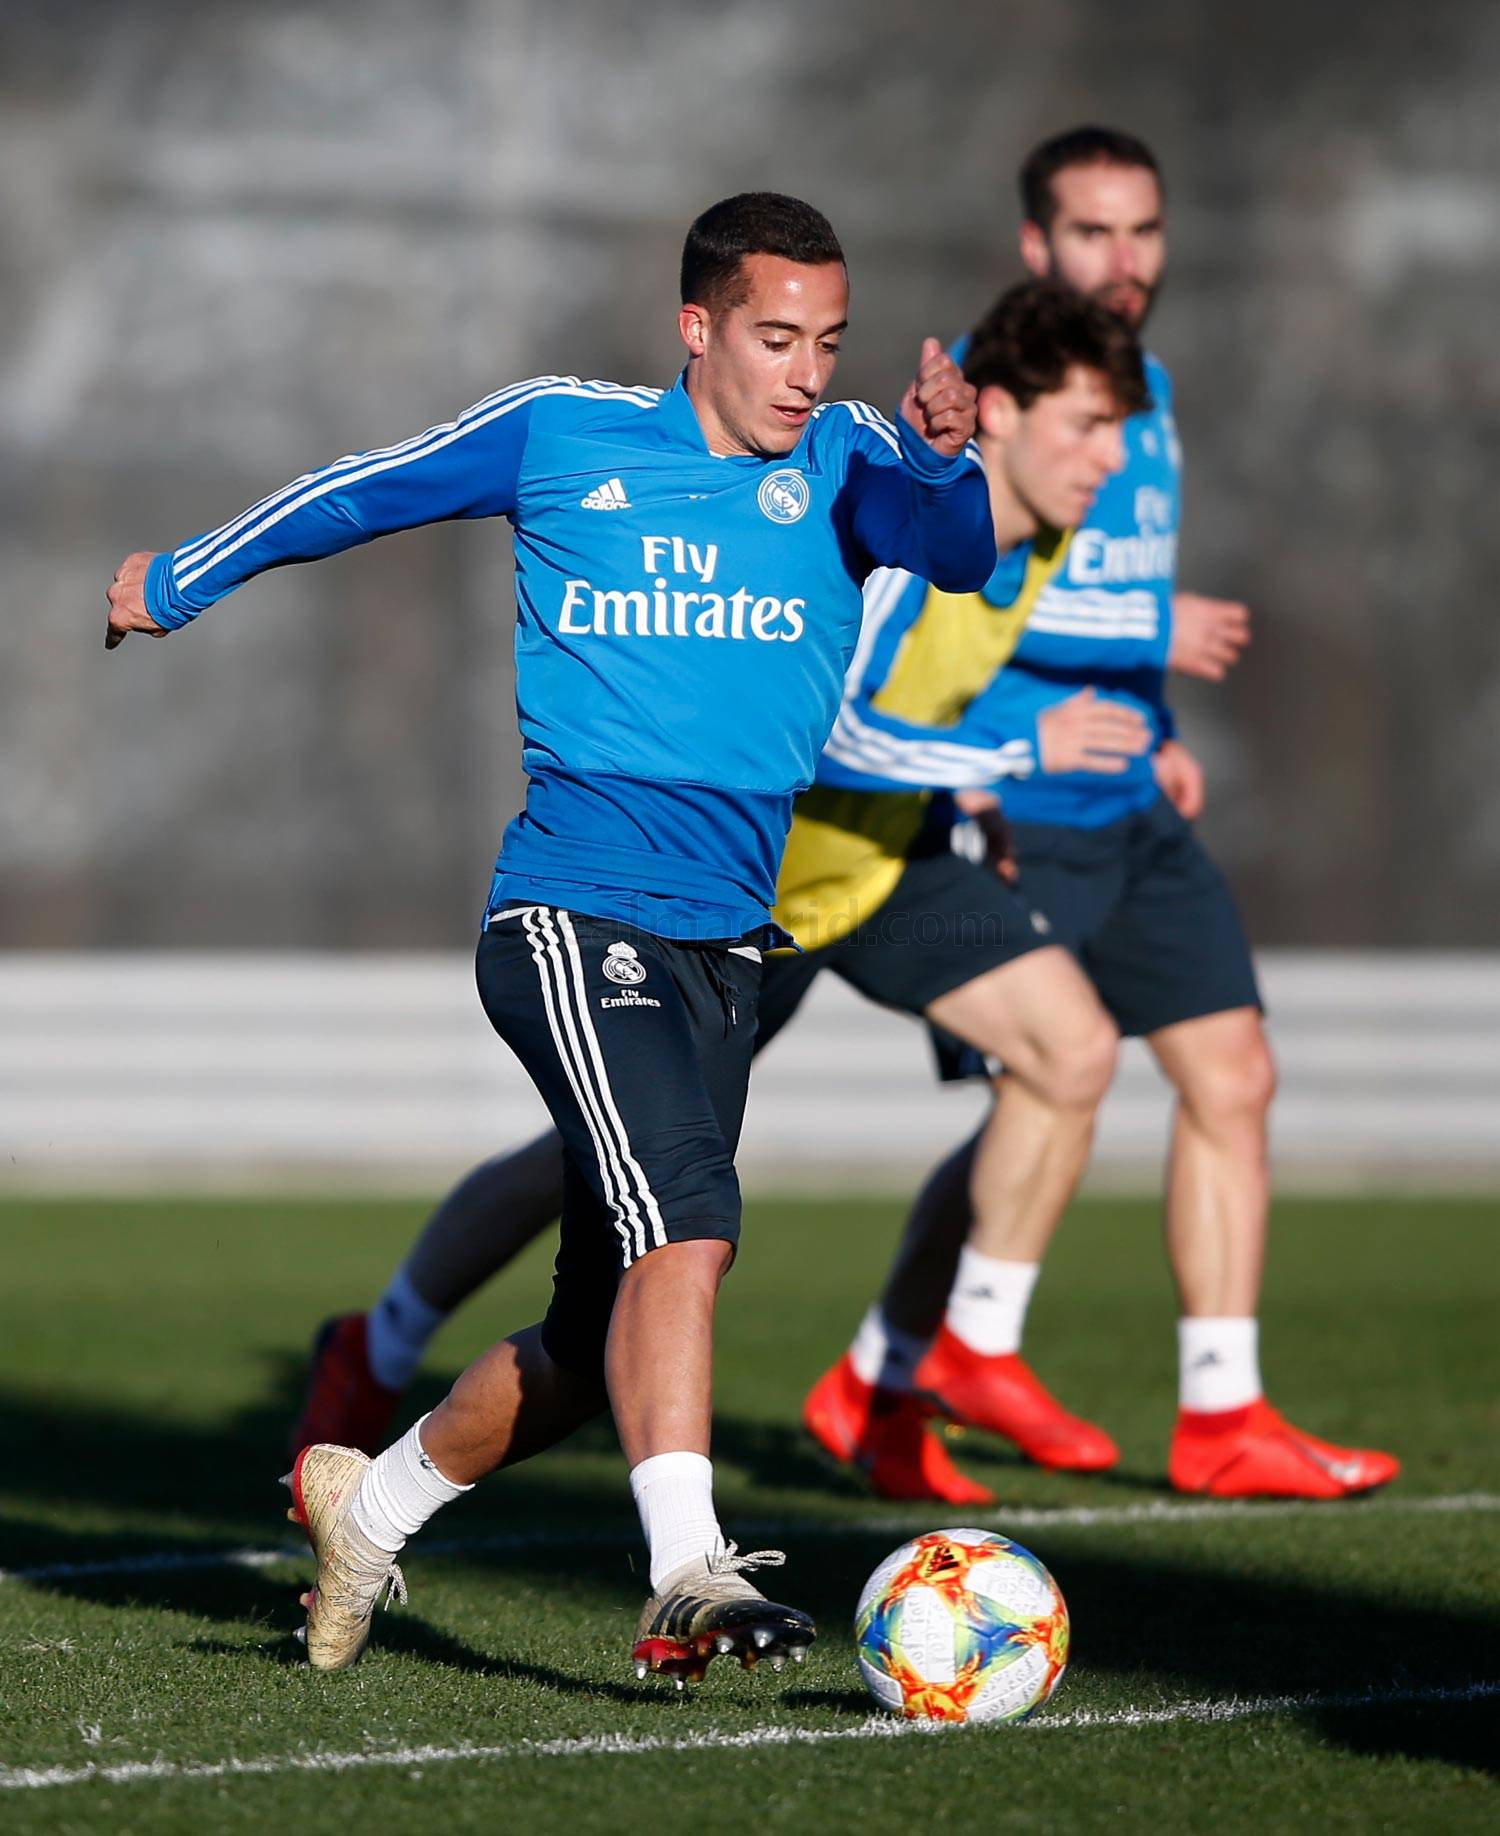 Real Madrid - Entrenamiento del Real Madrid - 21-01-2019